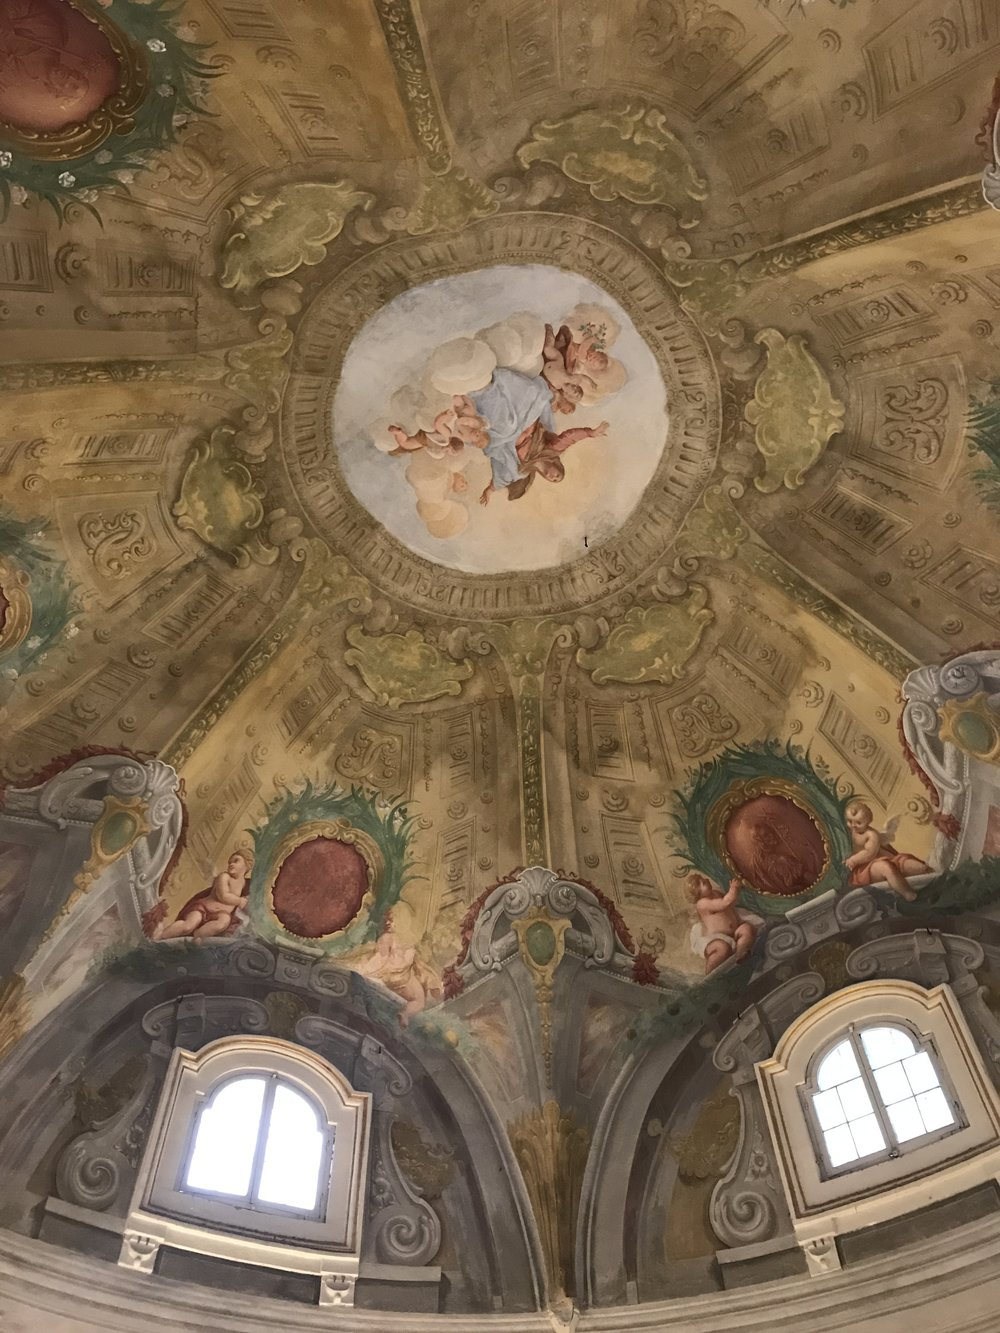 The ceiling of Museo Paolo Cresci